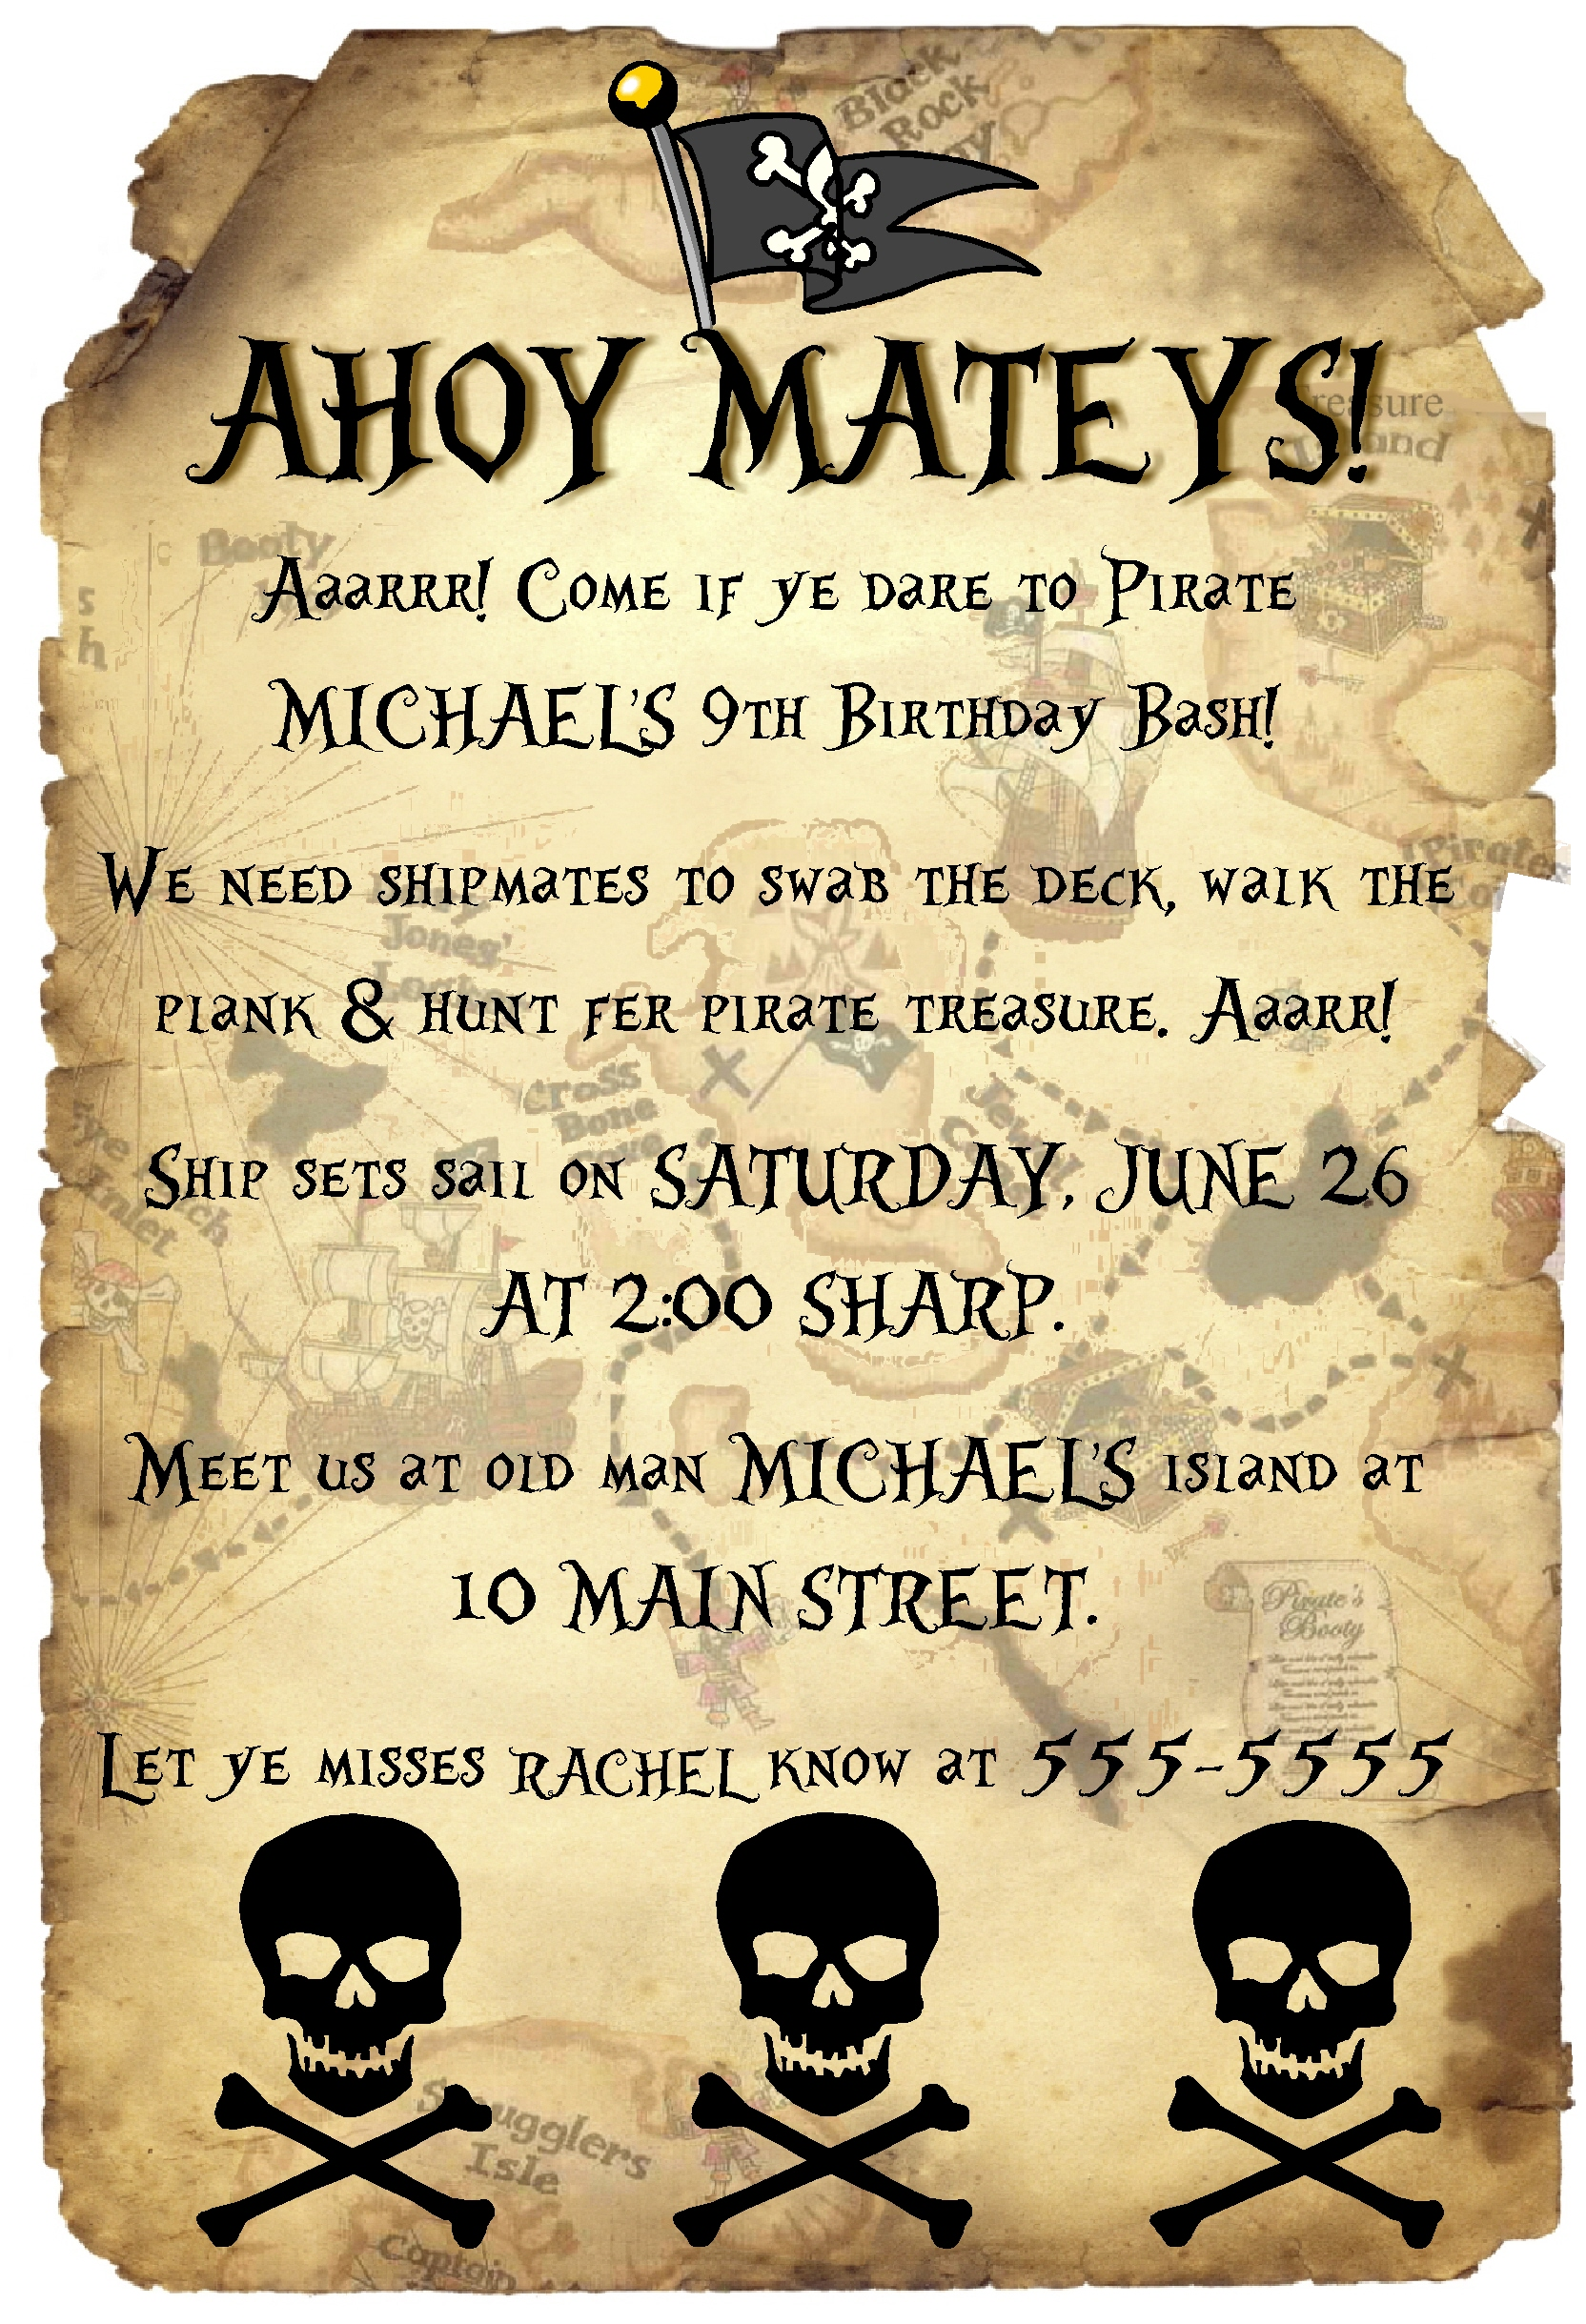 pirate themed birthday party invitation wording ; db44776a30a33ae5144cc952af252aa0